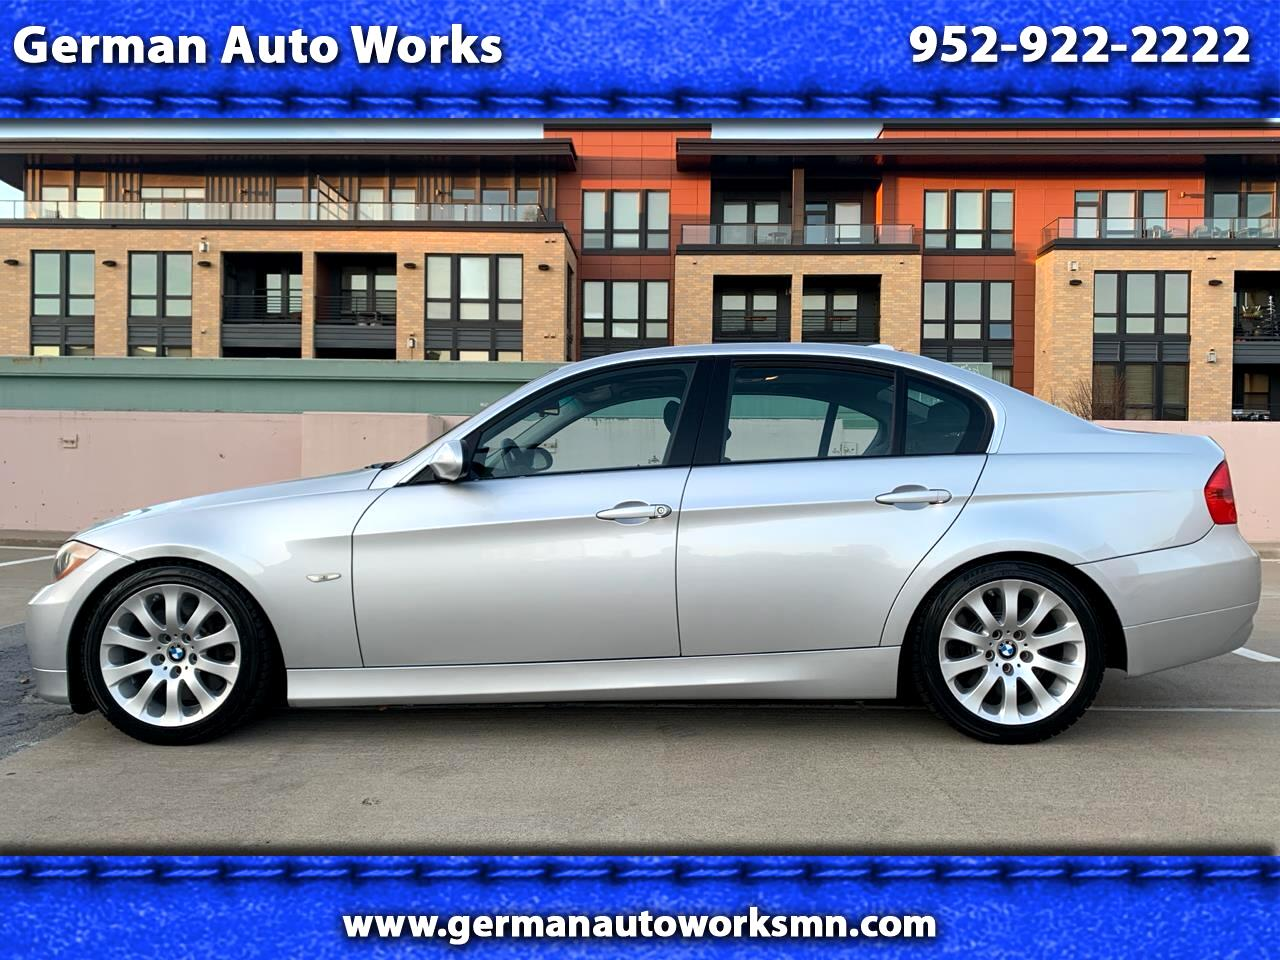 BMW 335xi Base 2008